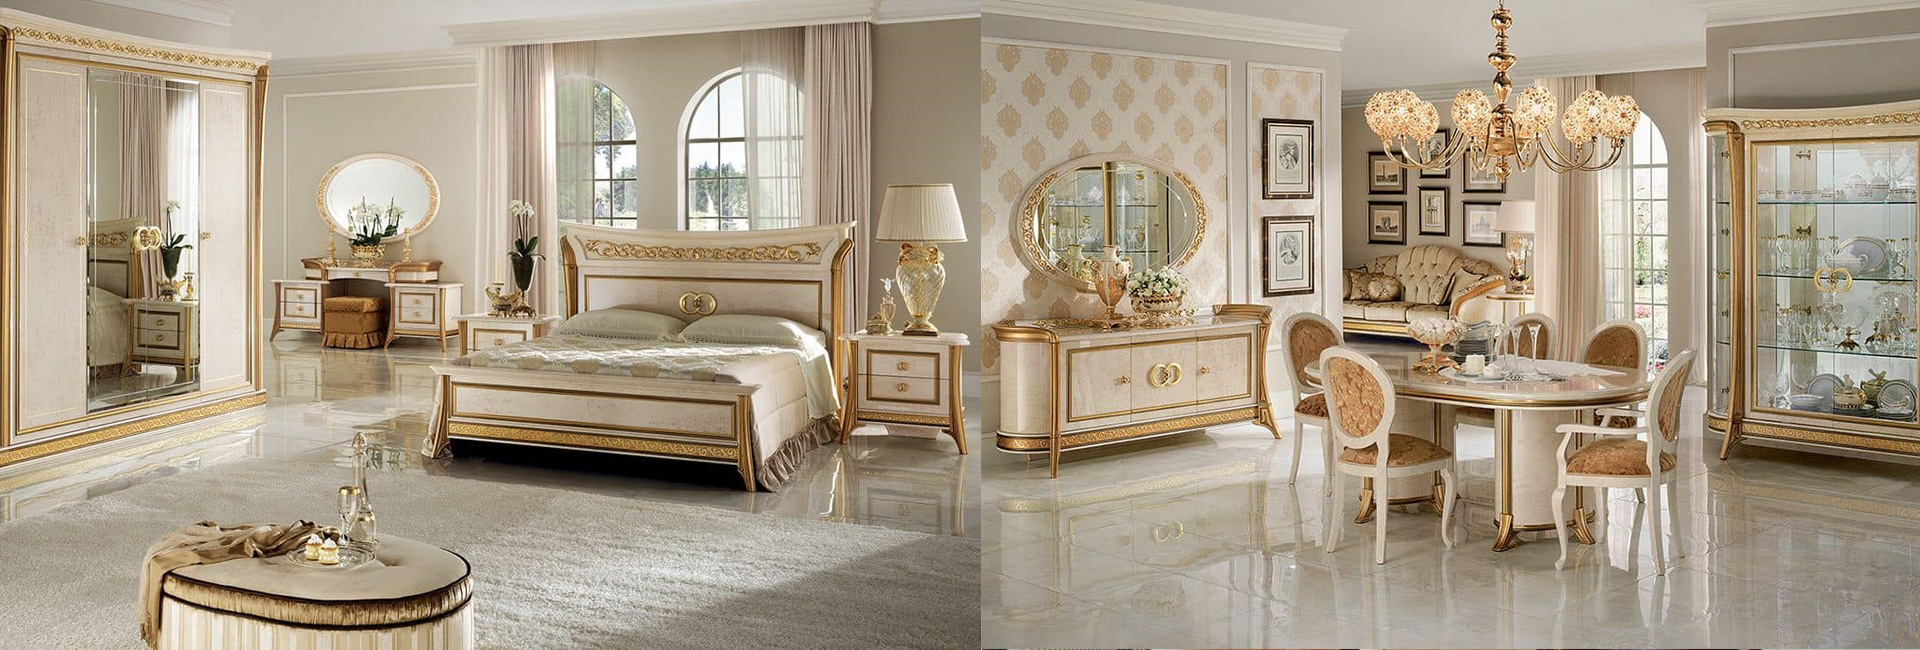 Used Furniture Buyers, Buy and Sell Used Items